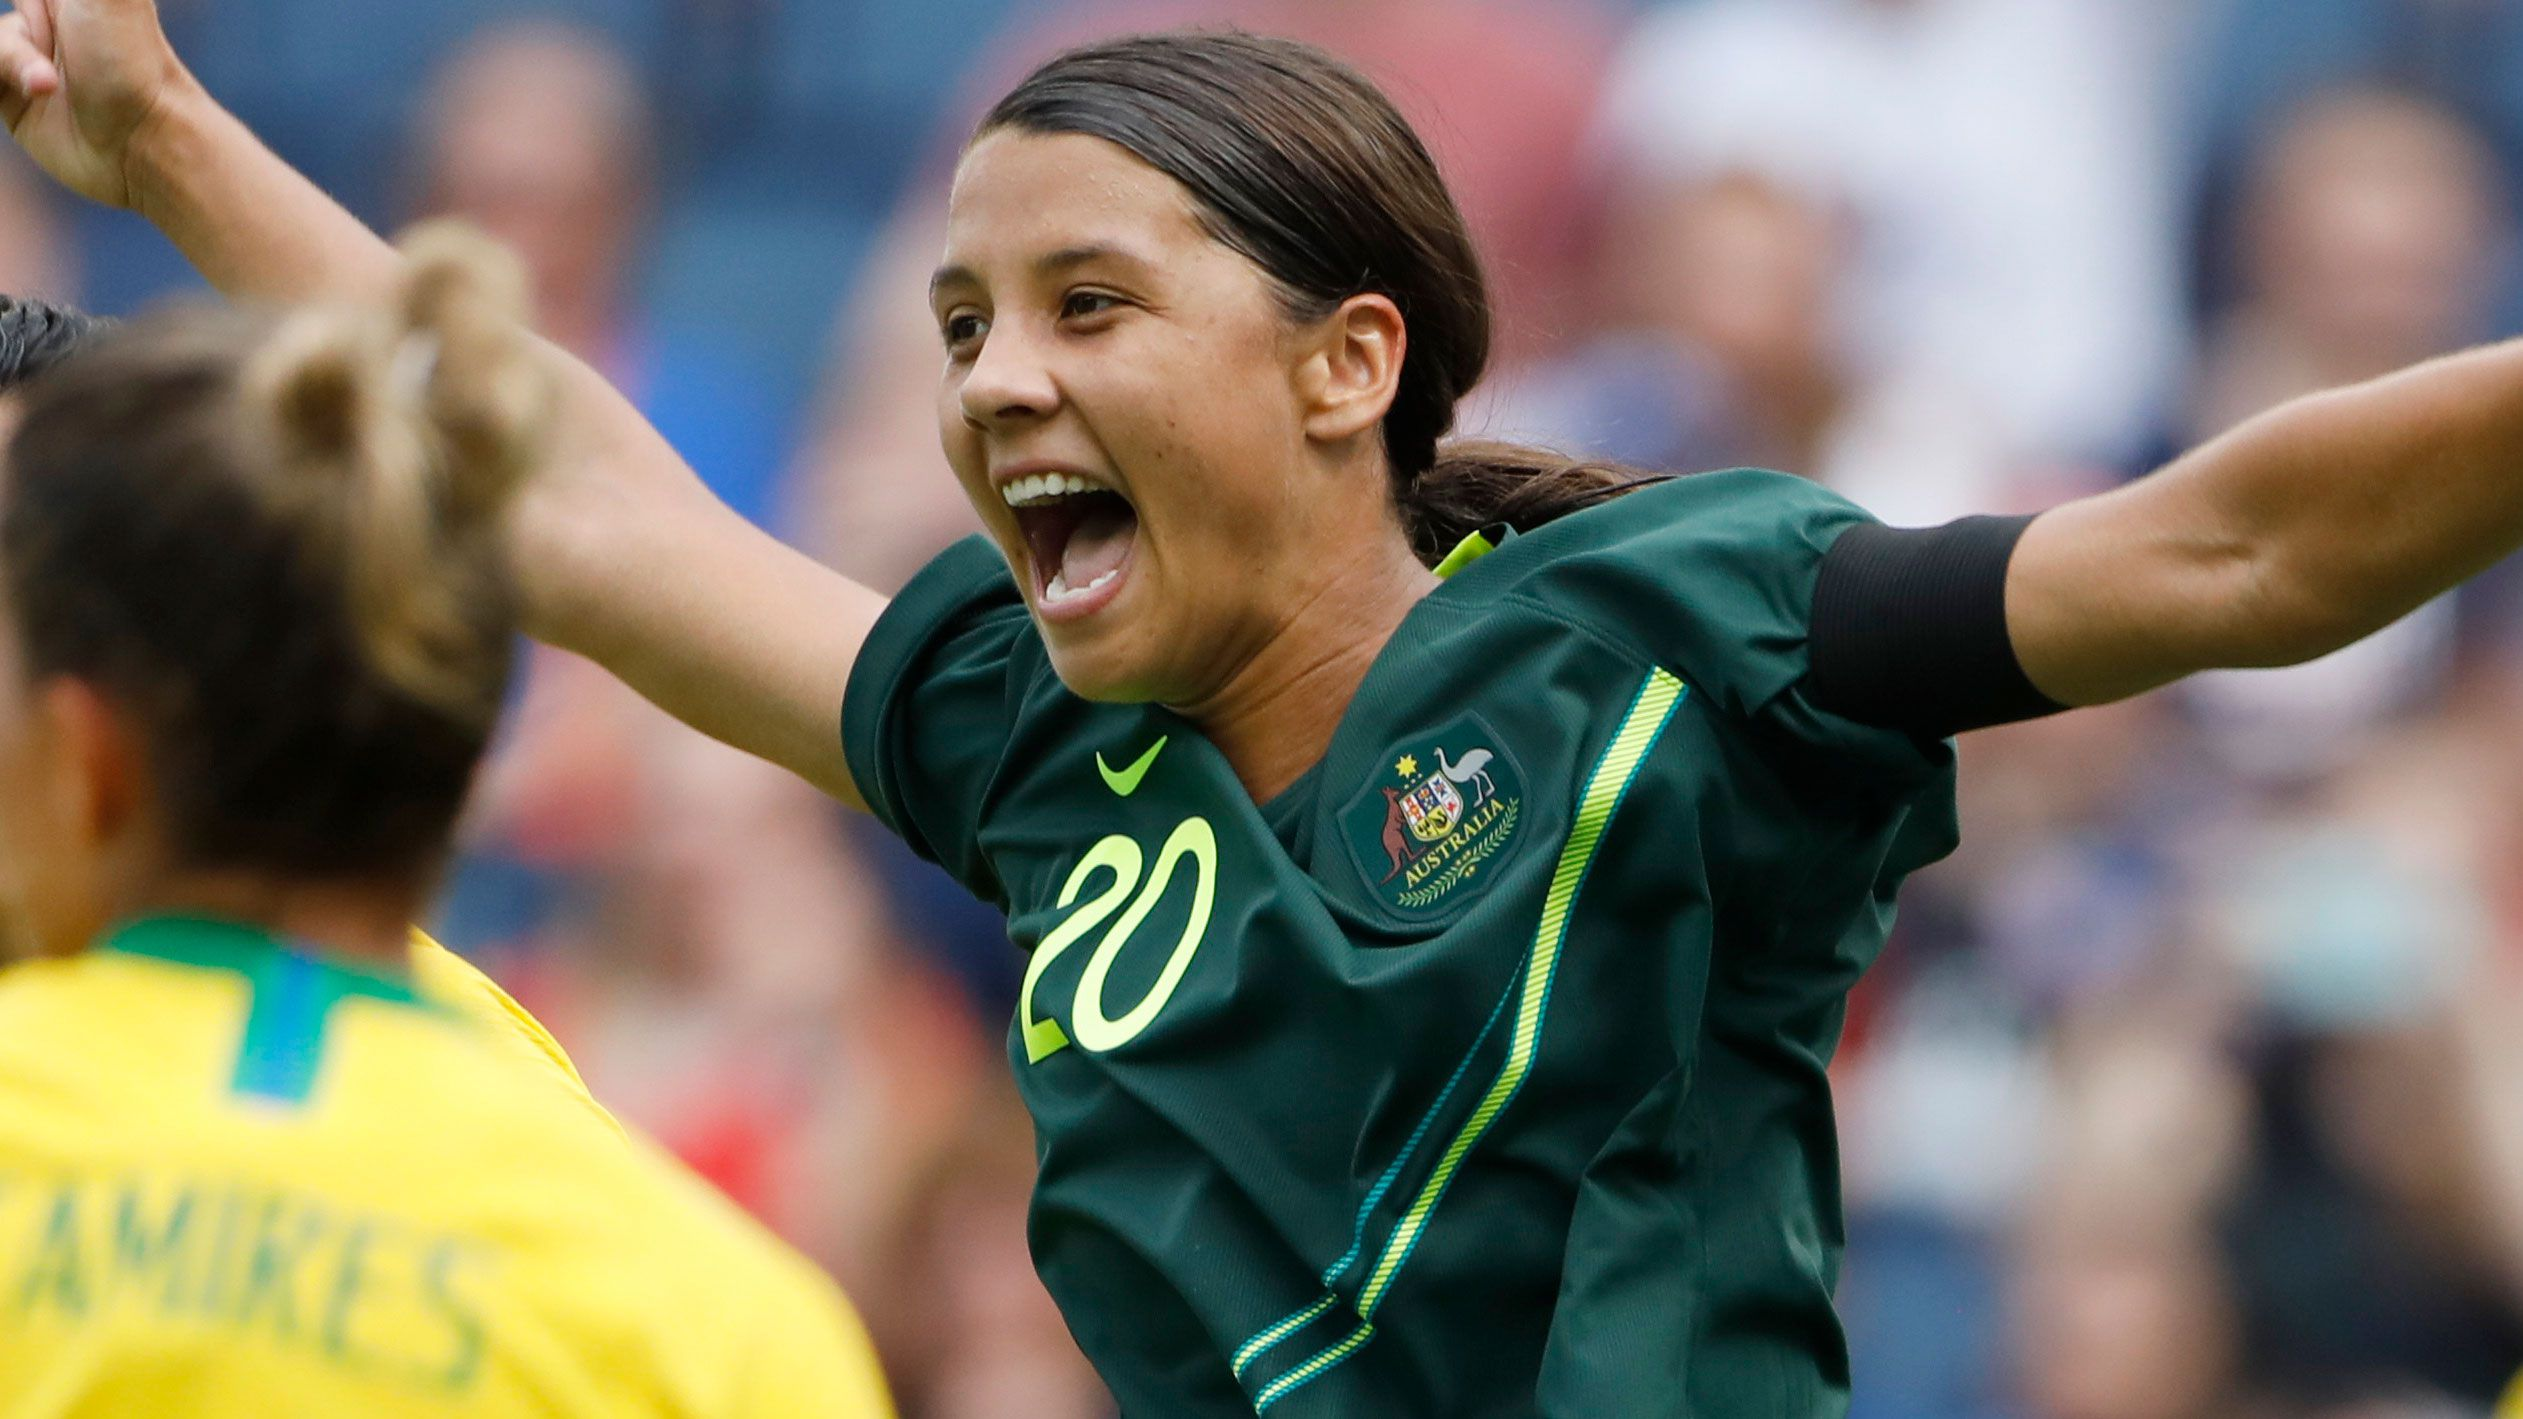 Women's time to shine: How Australian sports landscape has been turned on its head